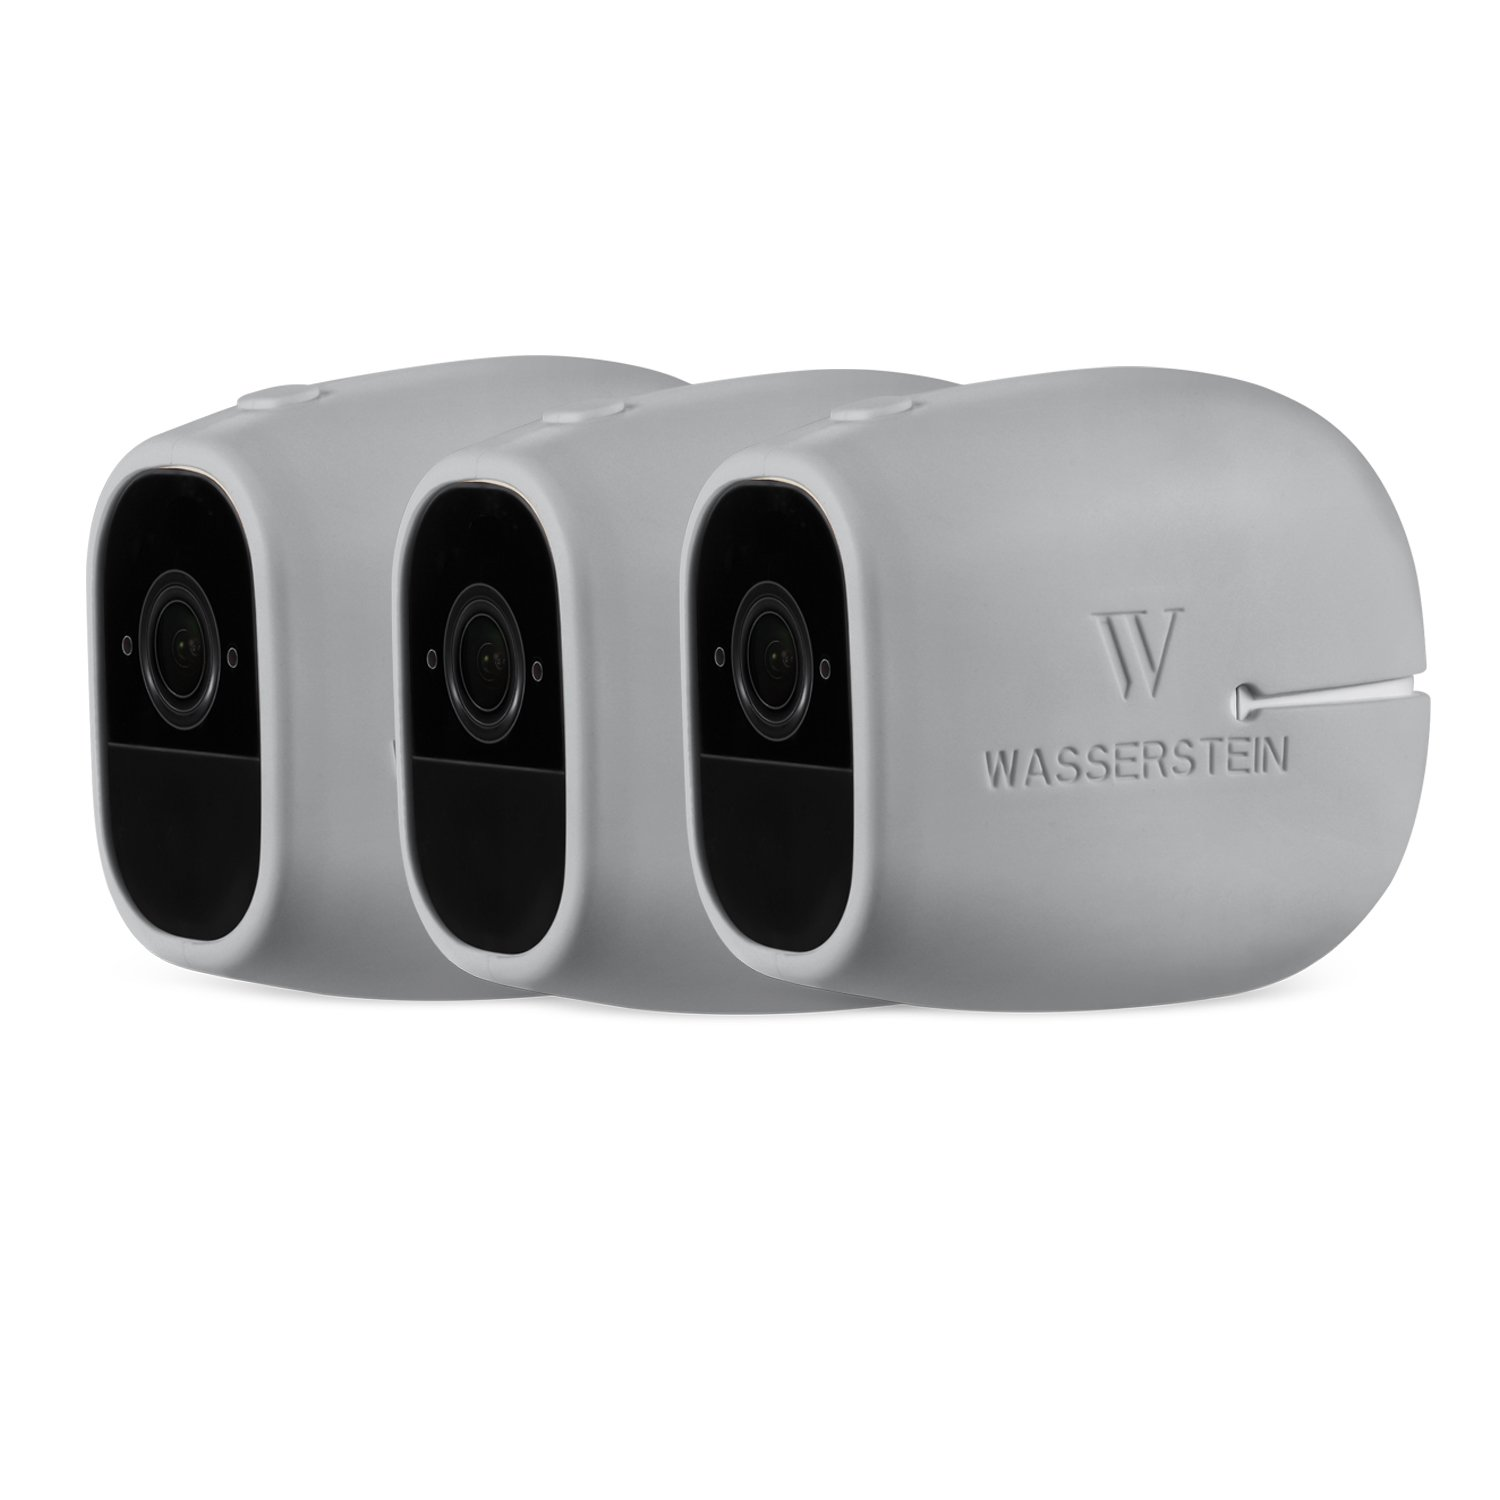 3 x Silicone Skins Compatible With Arlo Pro & Arlo Pro 2 Smart Security - 100% Wire-Free Cameras - by Wasserstein (3 Pack, Grey) by Wasserstein